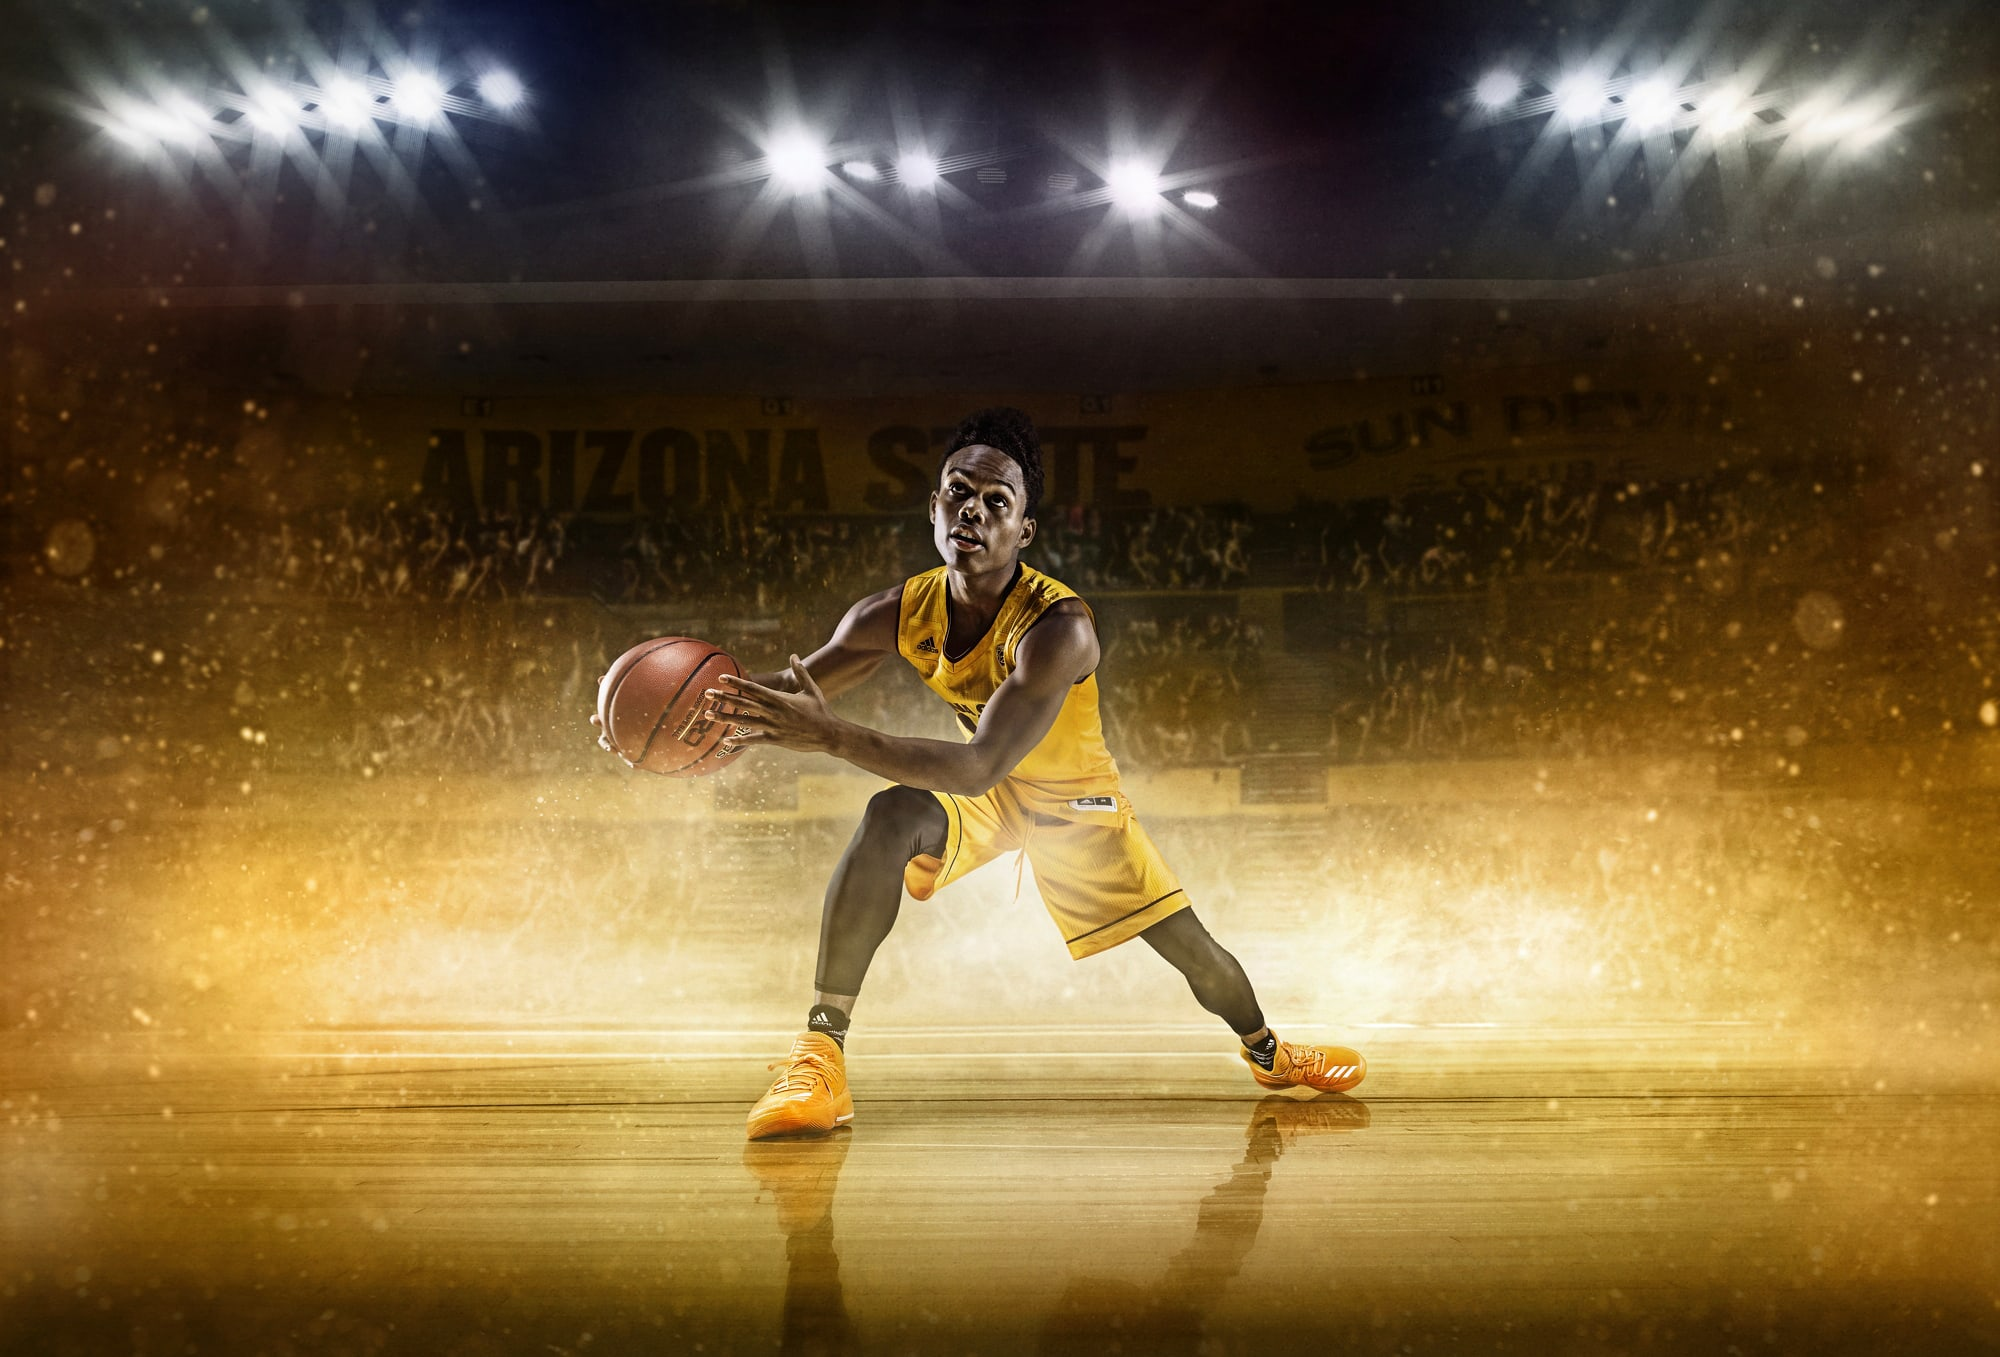 Basketball Advertising Campaign by Sports Photographer Blair Bunting